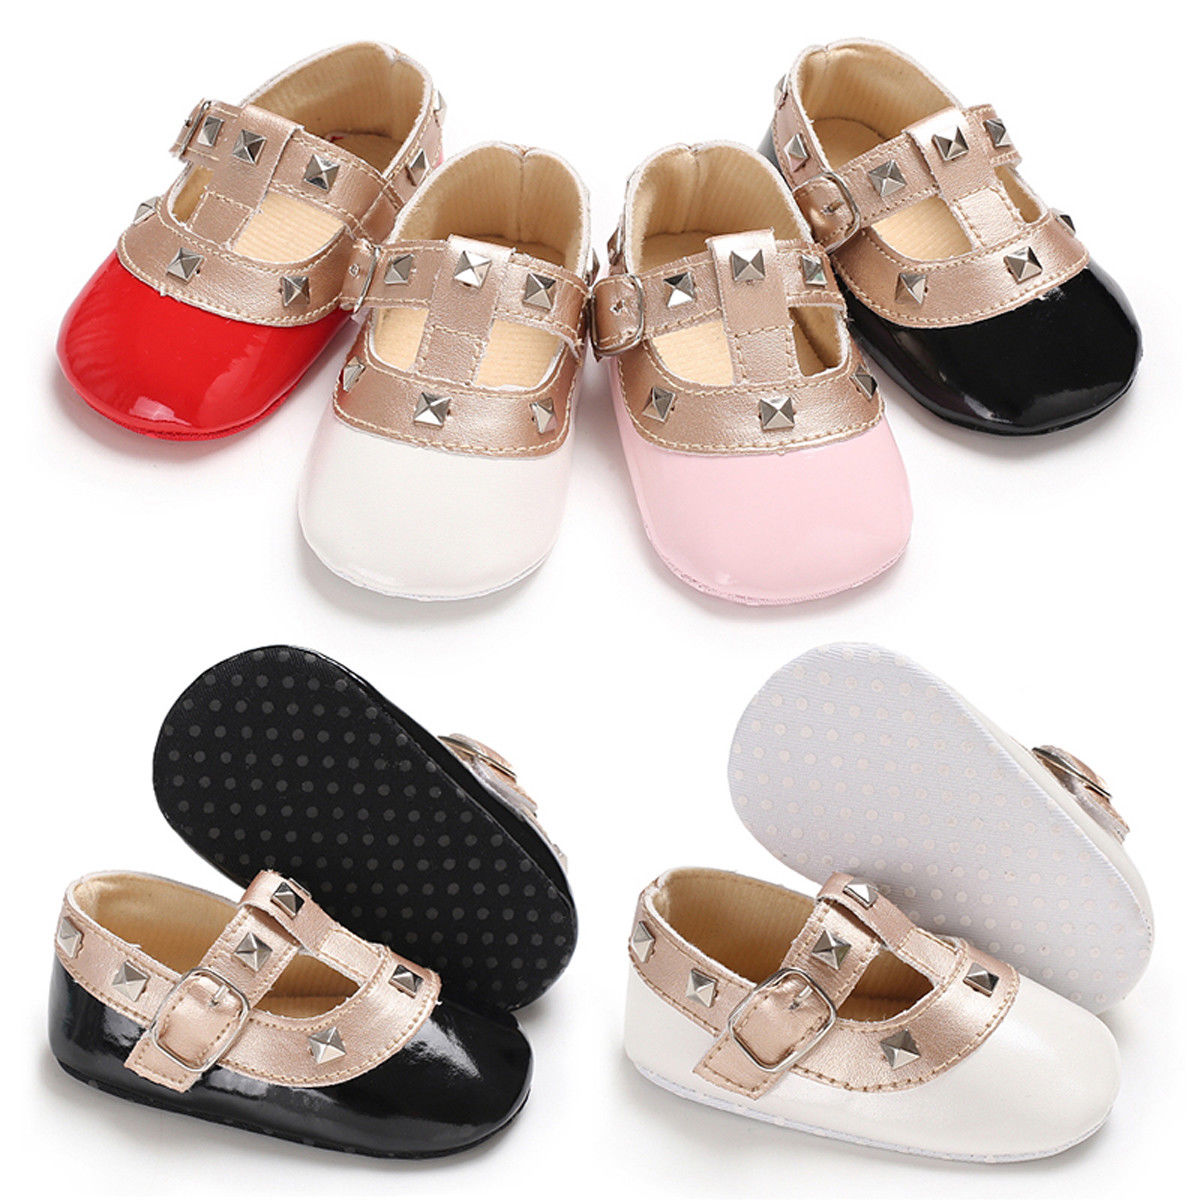 Newborn Baby Girls Bow Princess Shoes Soft Sole Crib Leather Solid Buckle Strap Flat With Heel Baby Shoes 4 Colors|Crib Shoes|   - AliExpress